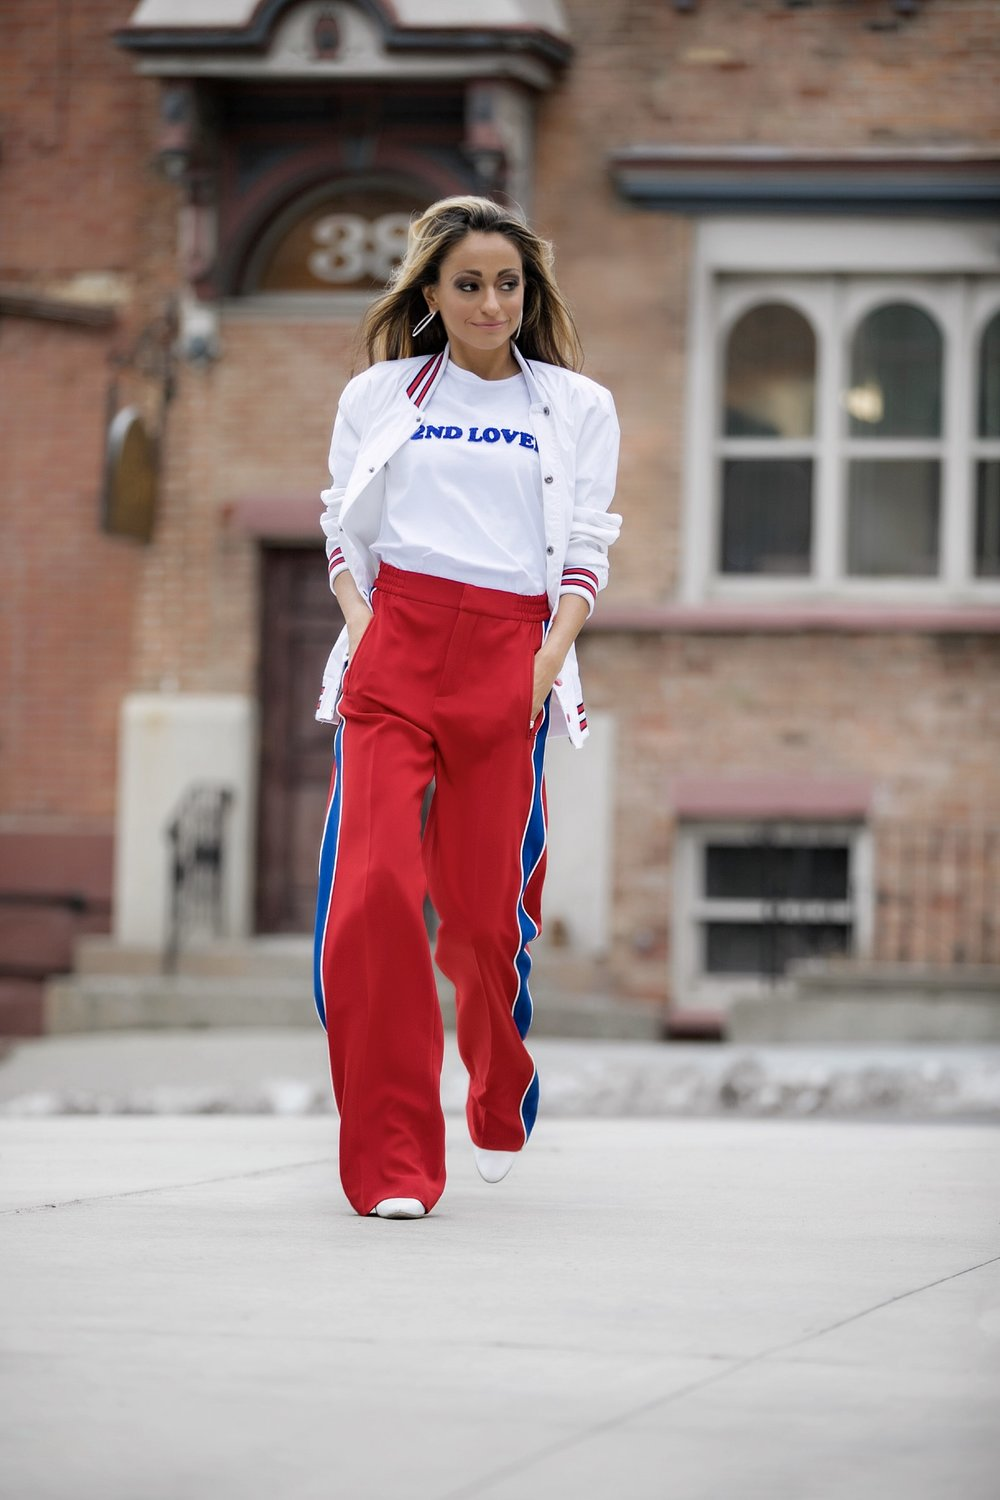 graphic tee, sporty style track pants, and Manolo Blahnik boots